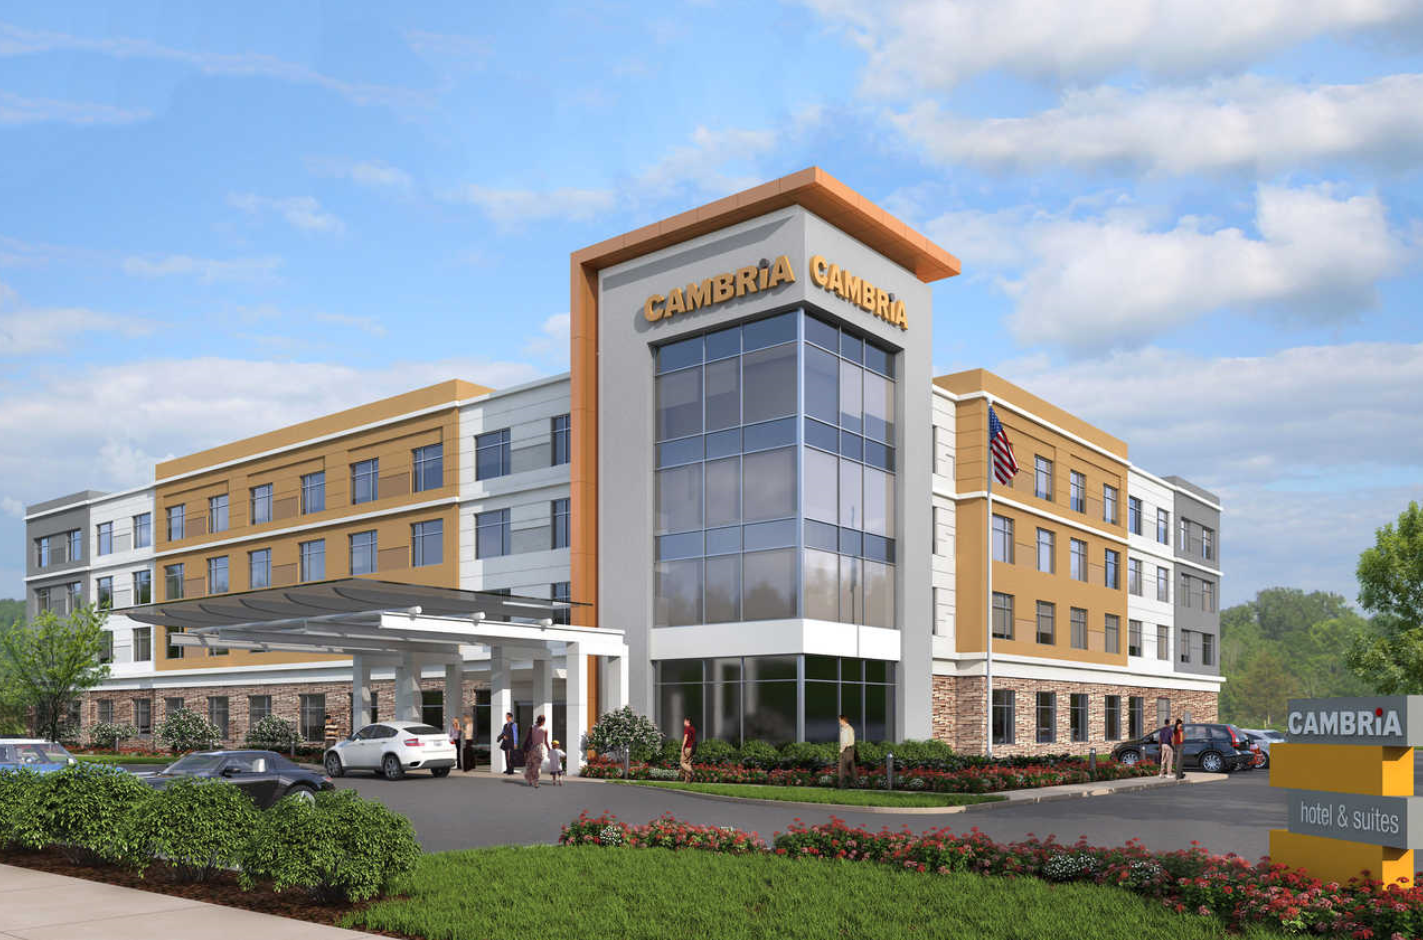 Choice hotels opens new cambria in newport r i hotel for Choice hotels